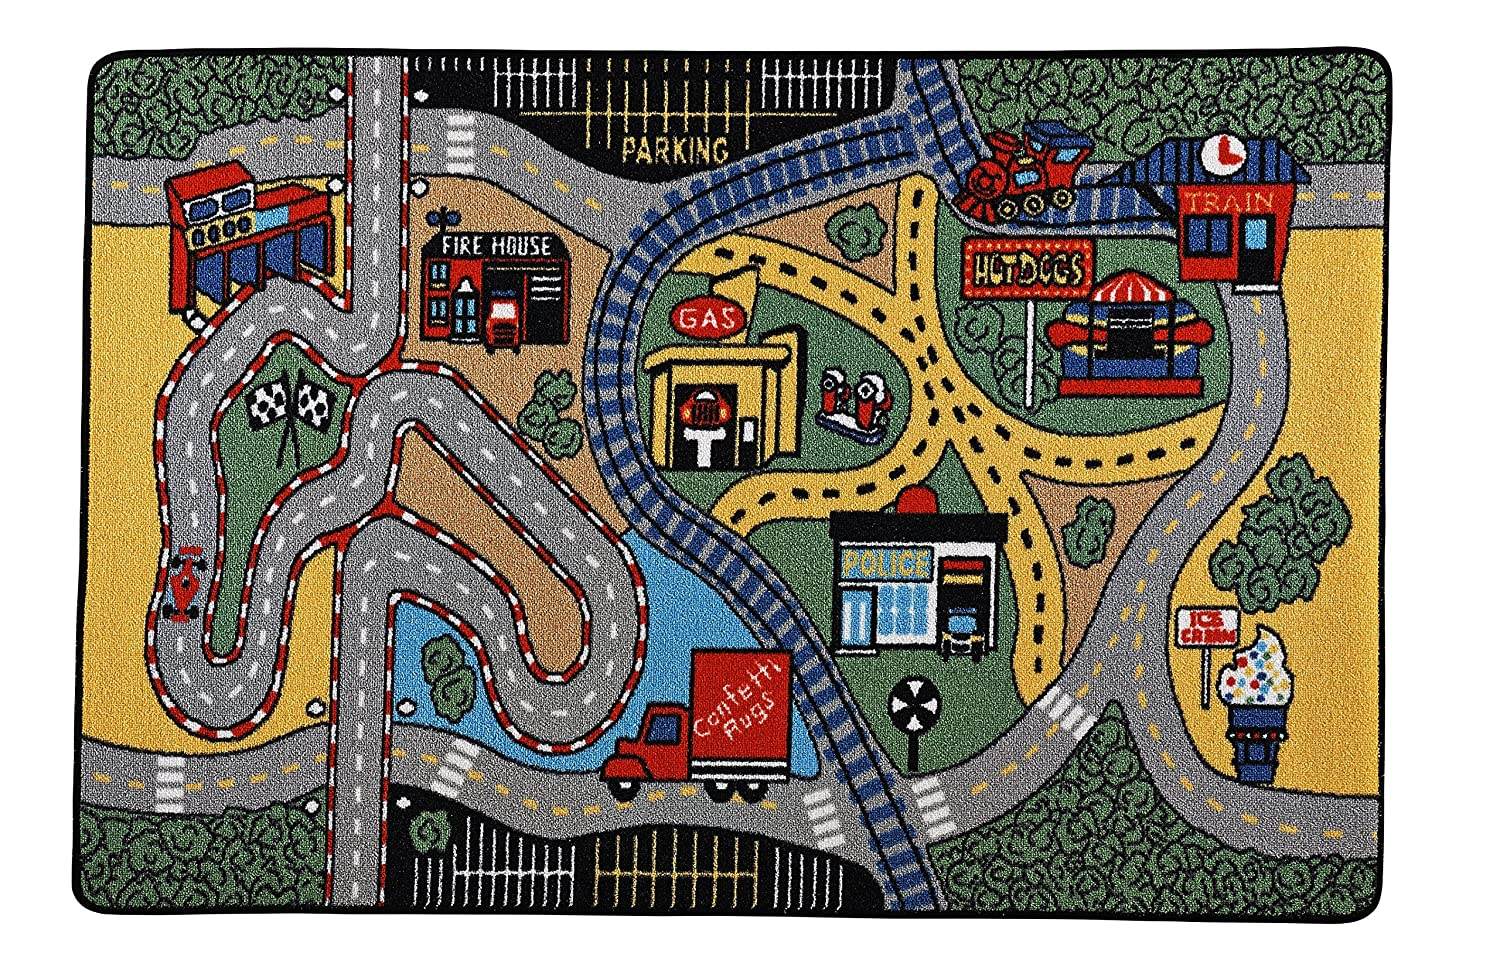 Amazon.com: Adgo Kids Collection Anti Bacterial Rubber Backed Non Slip Green Frame with Multi Colors Kids Childrens Educational Race Area Rug (5 x 7, ...